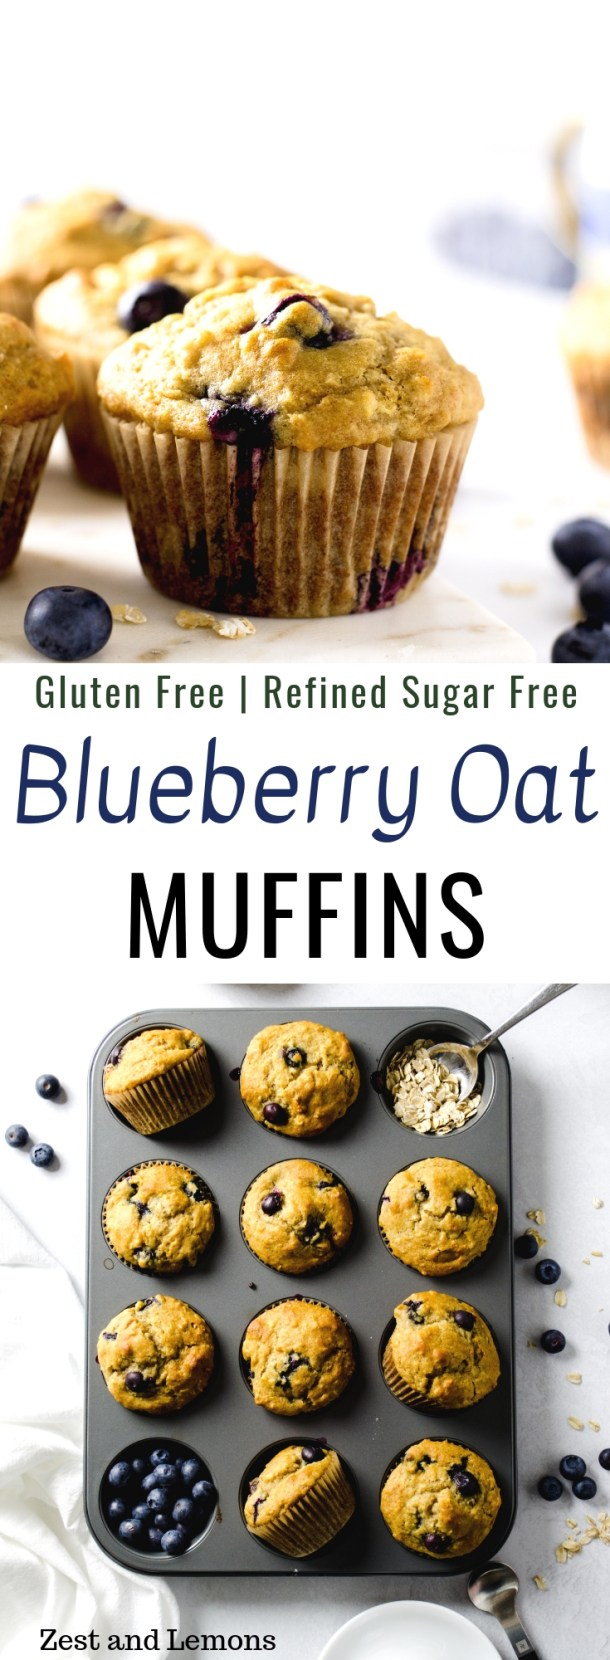 Gluten free blueberry oat muffins. Refined sugar free and easy to make - Zest and Lemons #glutenfree #glutenfreemuffins #blueberrymuffins #oatmealmuffins